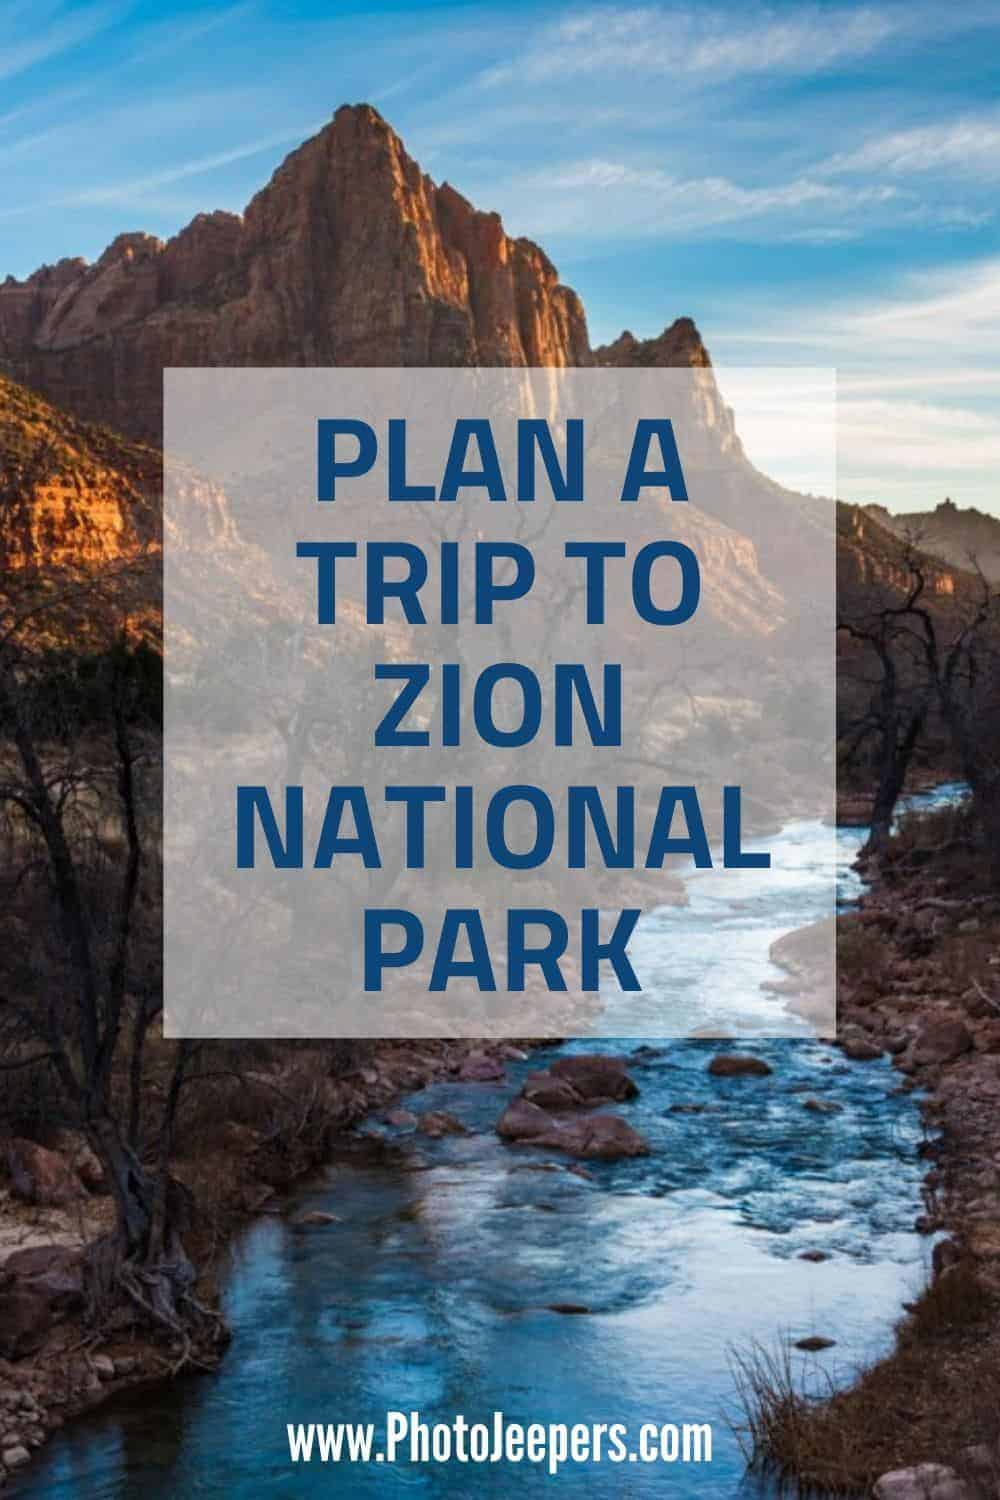 If you're planning a visit to Zion, then read our extensive Zion National Park guide filled with tips to help you plan the perfect Zion National Park vacation: What to pack for a trip to Zion | Where to stay near Zion | Zion National Park basics | How to get to Zion | Things to do at Zion National Park #nationalparks #zion #zionnationalpark #utah #photojeepers